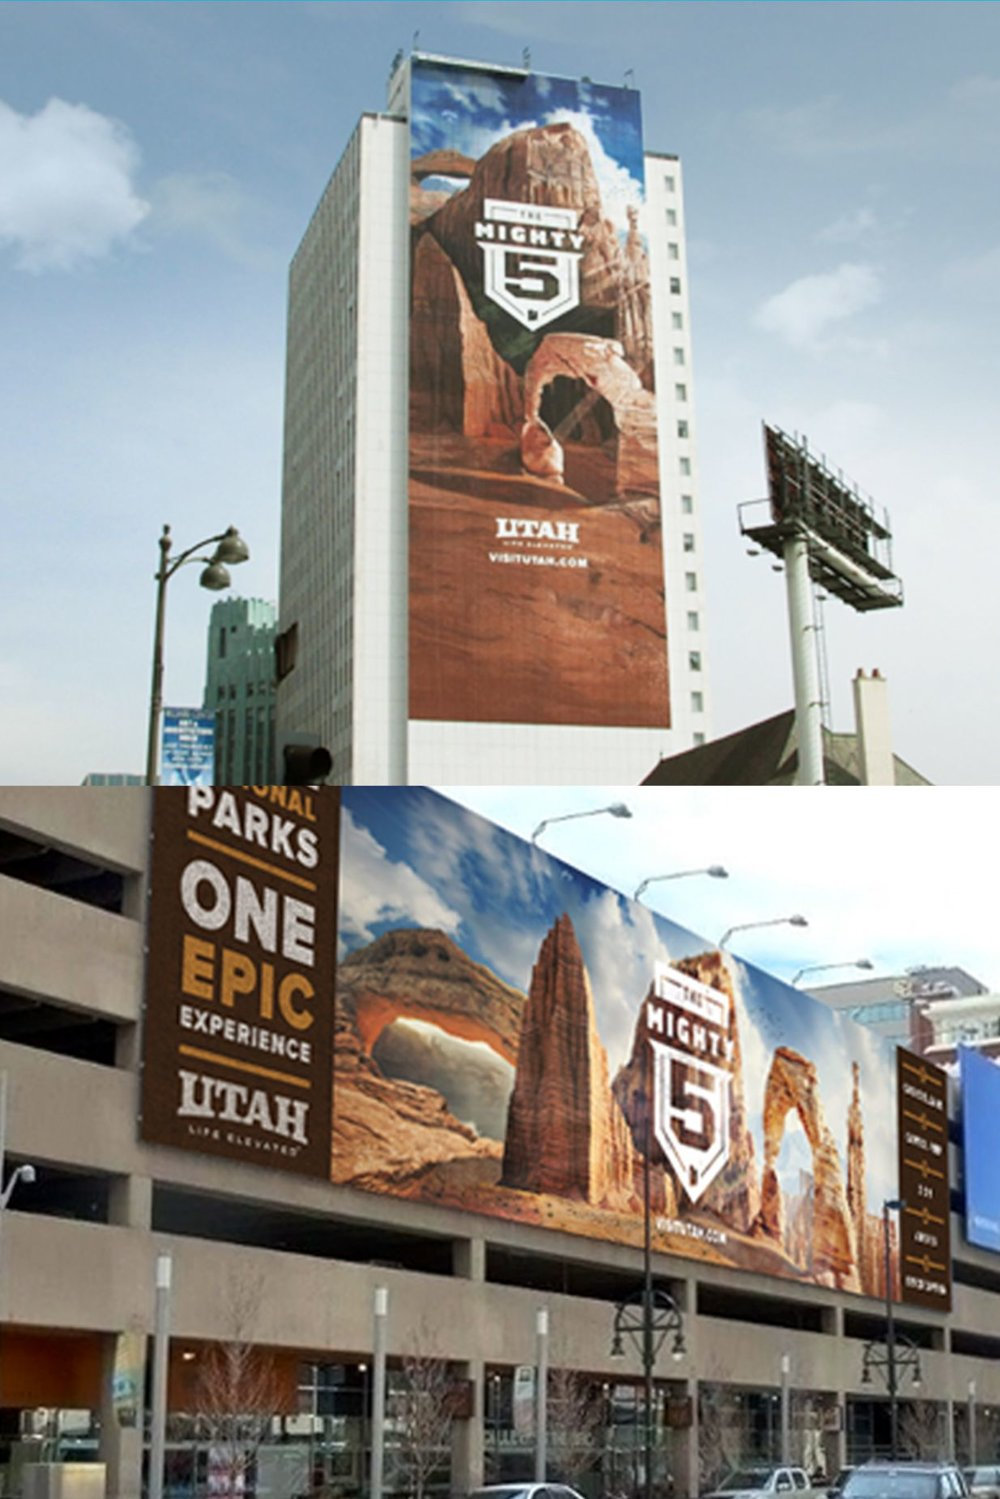 Billboards for Mighty 5 Campaign